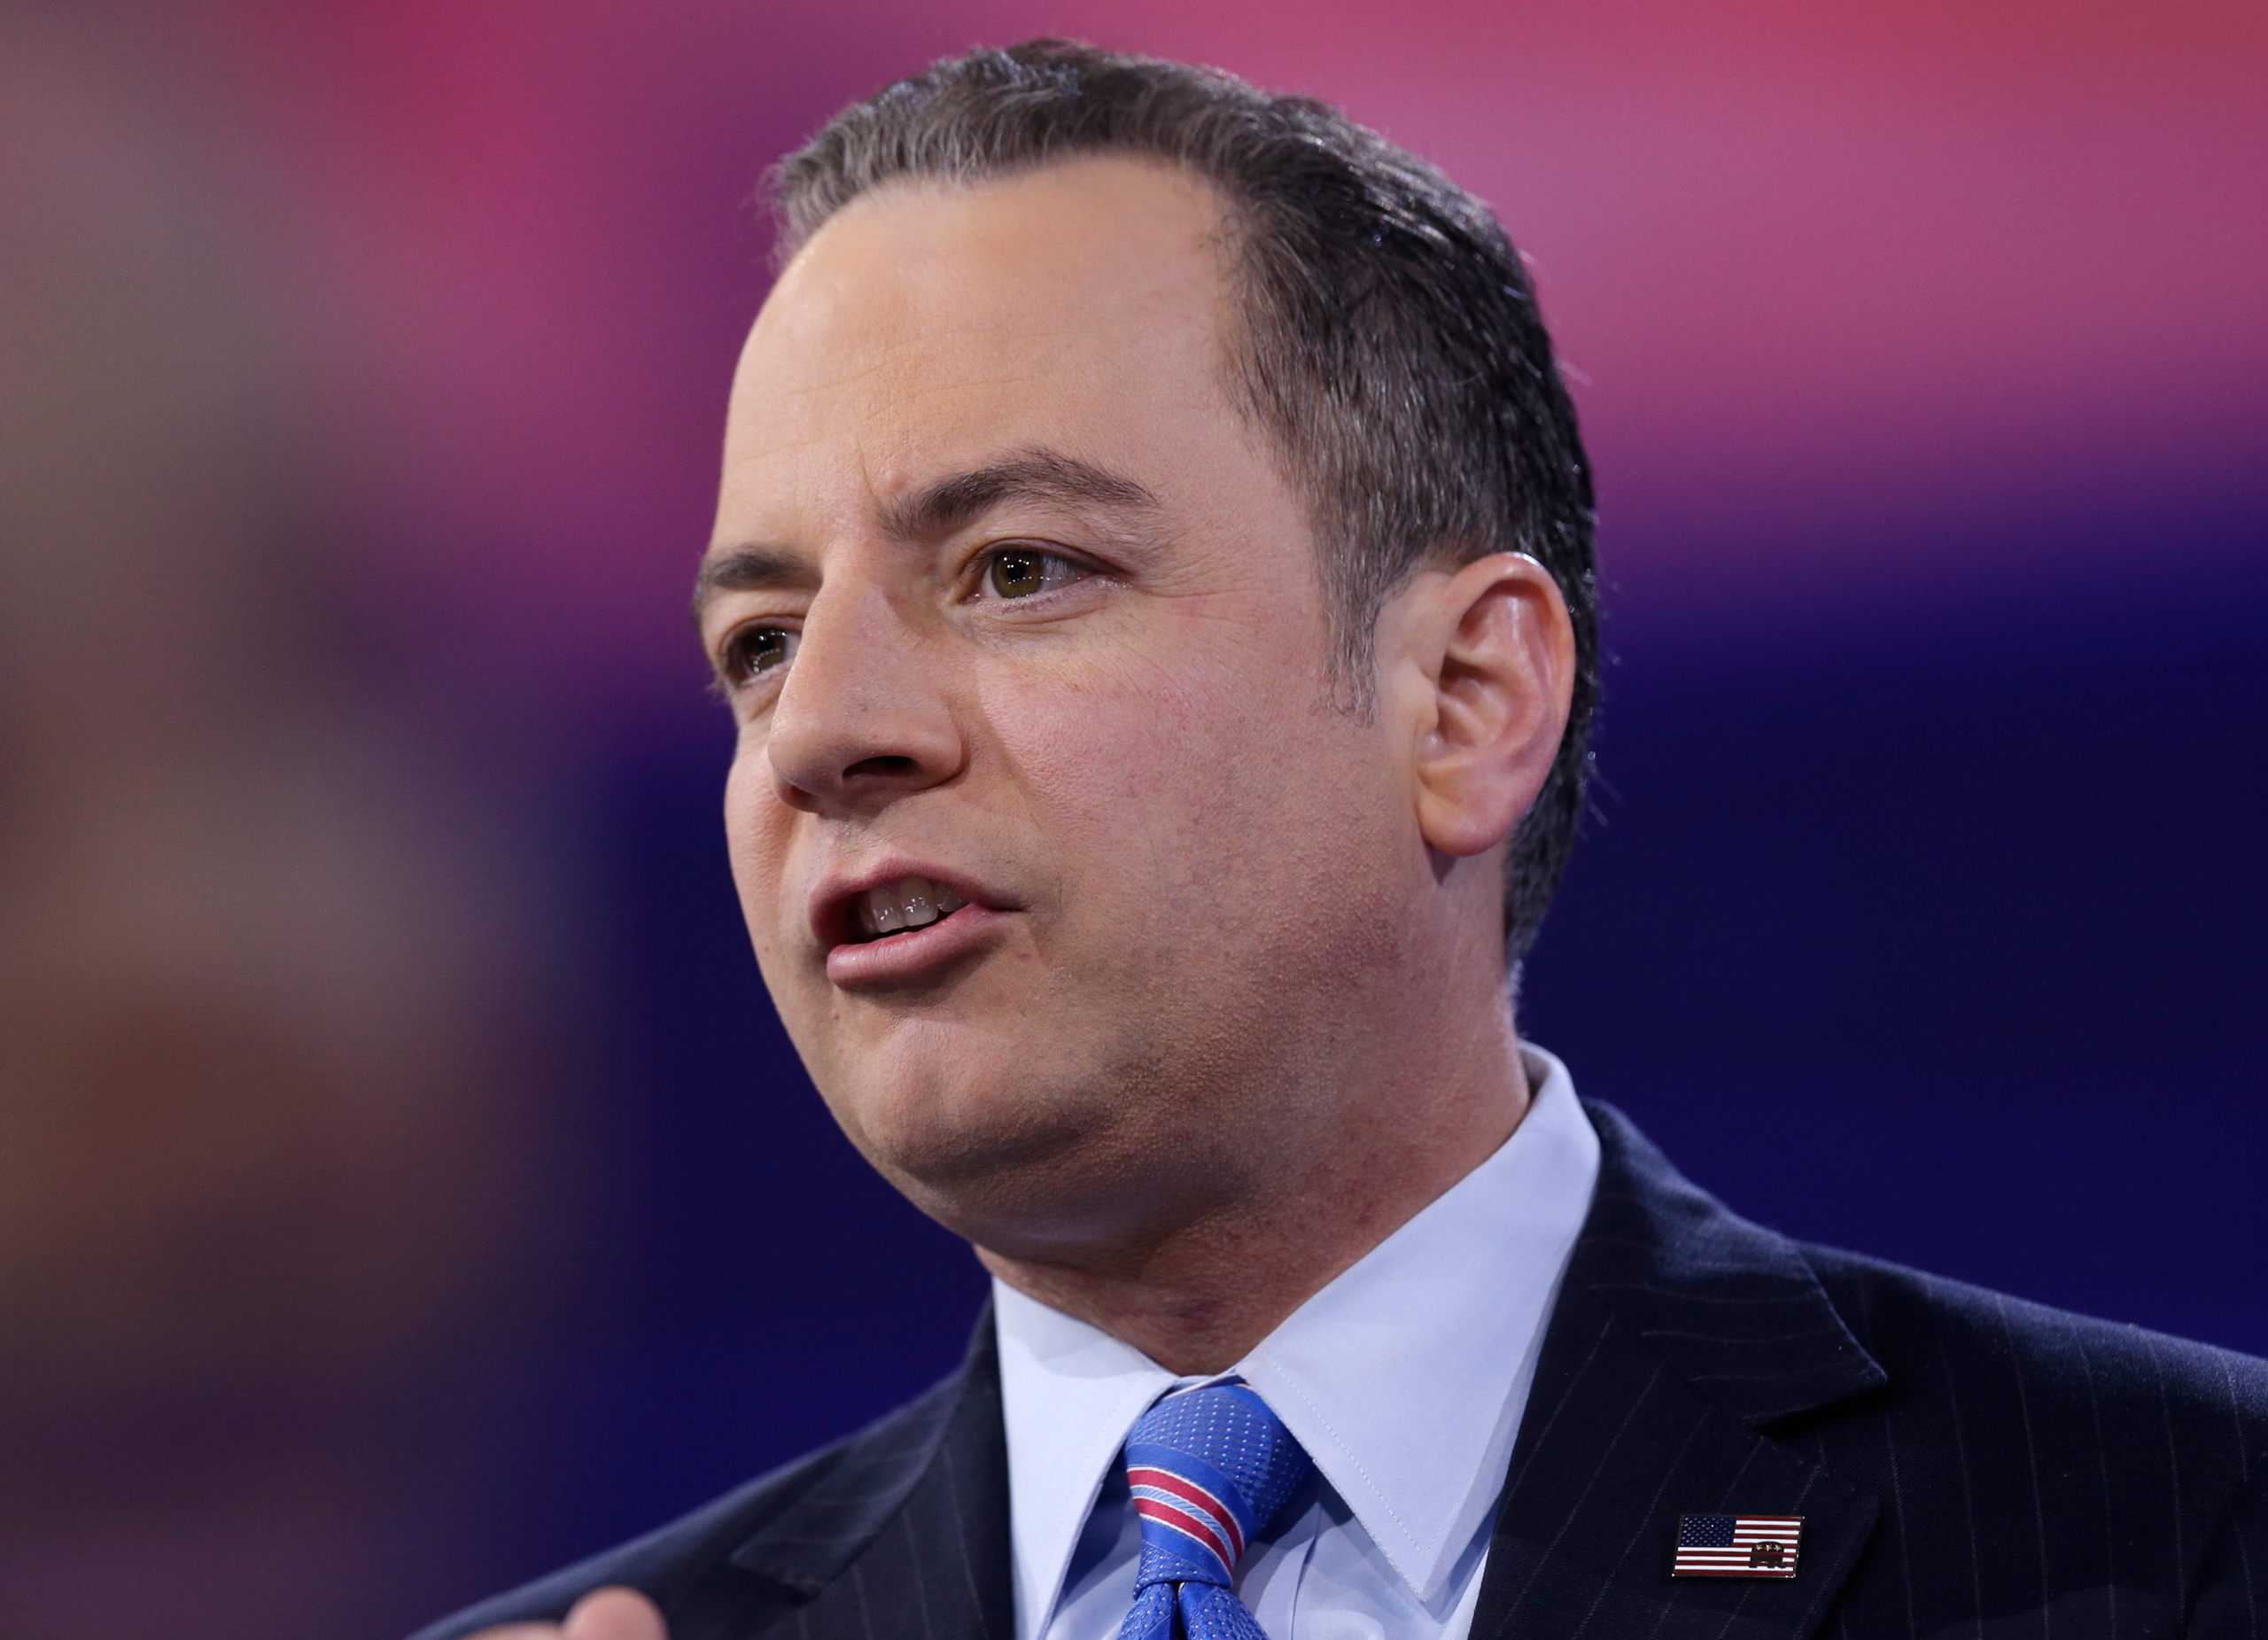 Republican National Committee Chairman Reince Priebus speaks during the Conservative Political Action Conference (CPAC) in National Harbor, Md., on March 4, 2016.